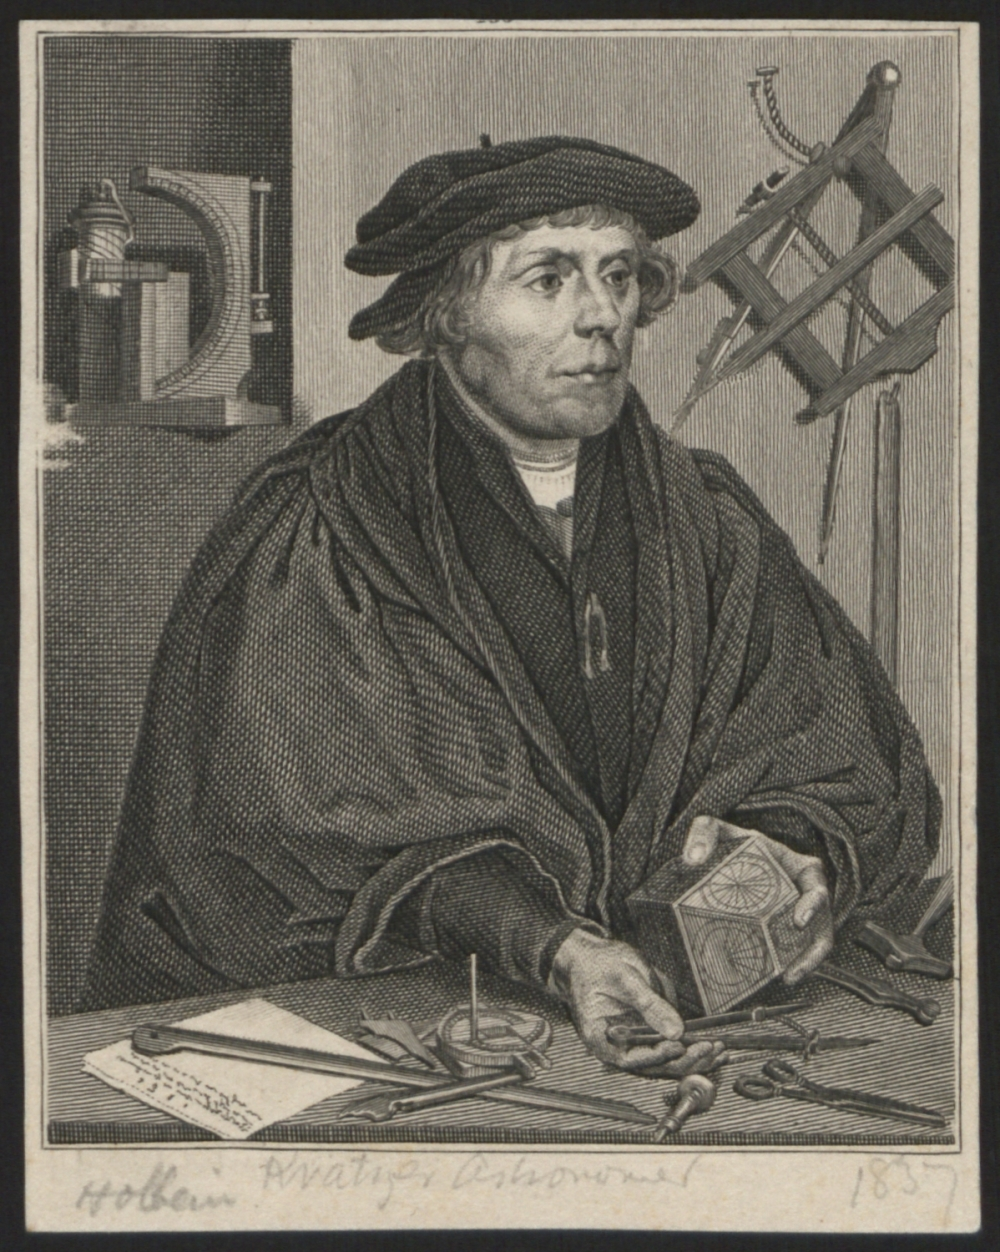 preview image for Print (Engraving) Nicolaus Kratzer, after Holbein, 1837